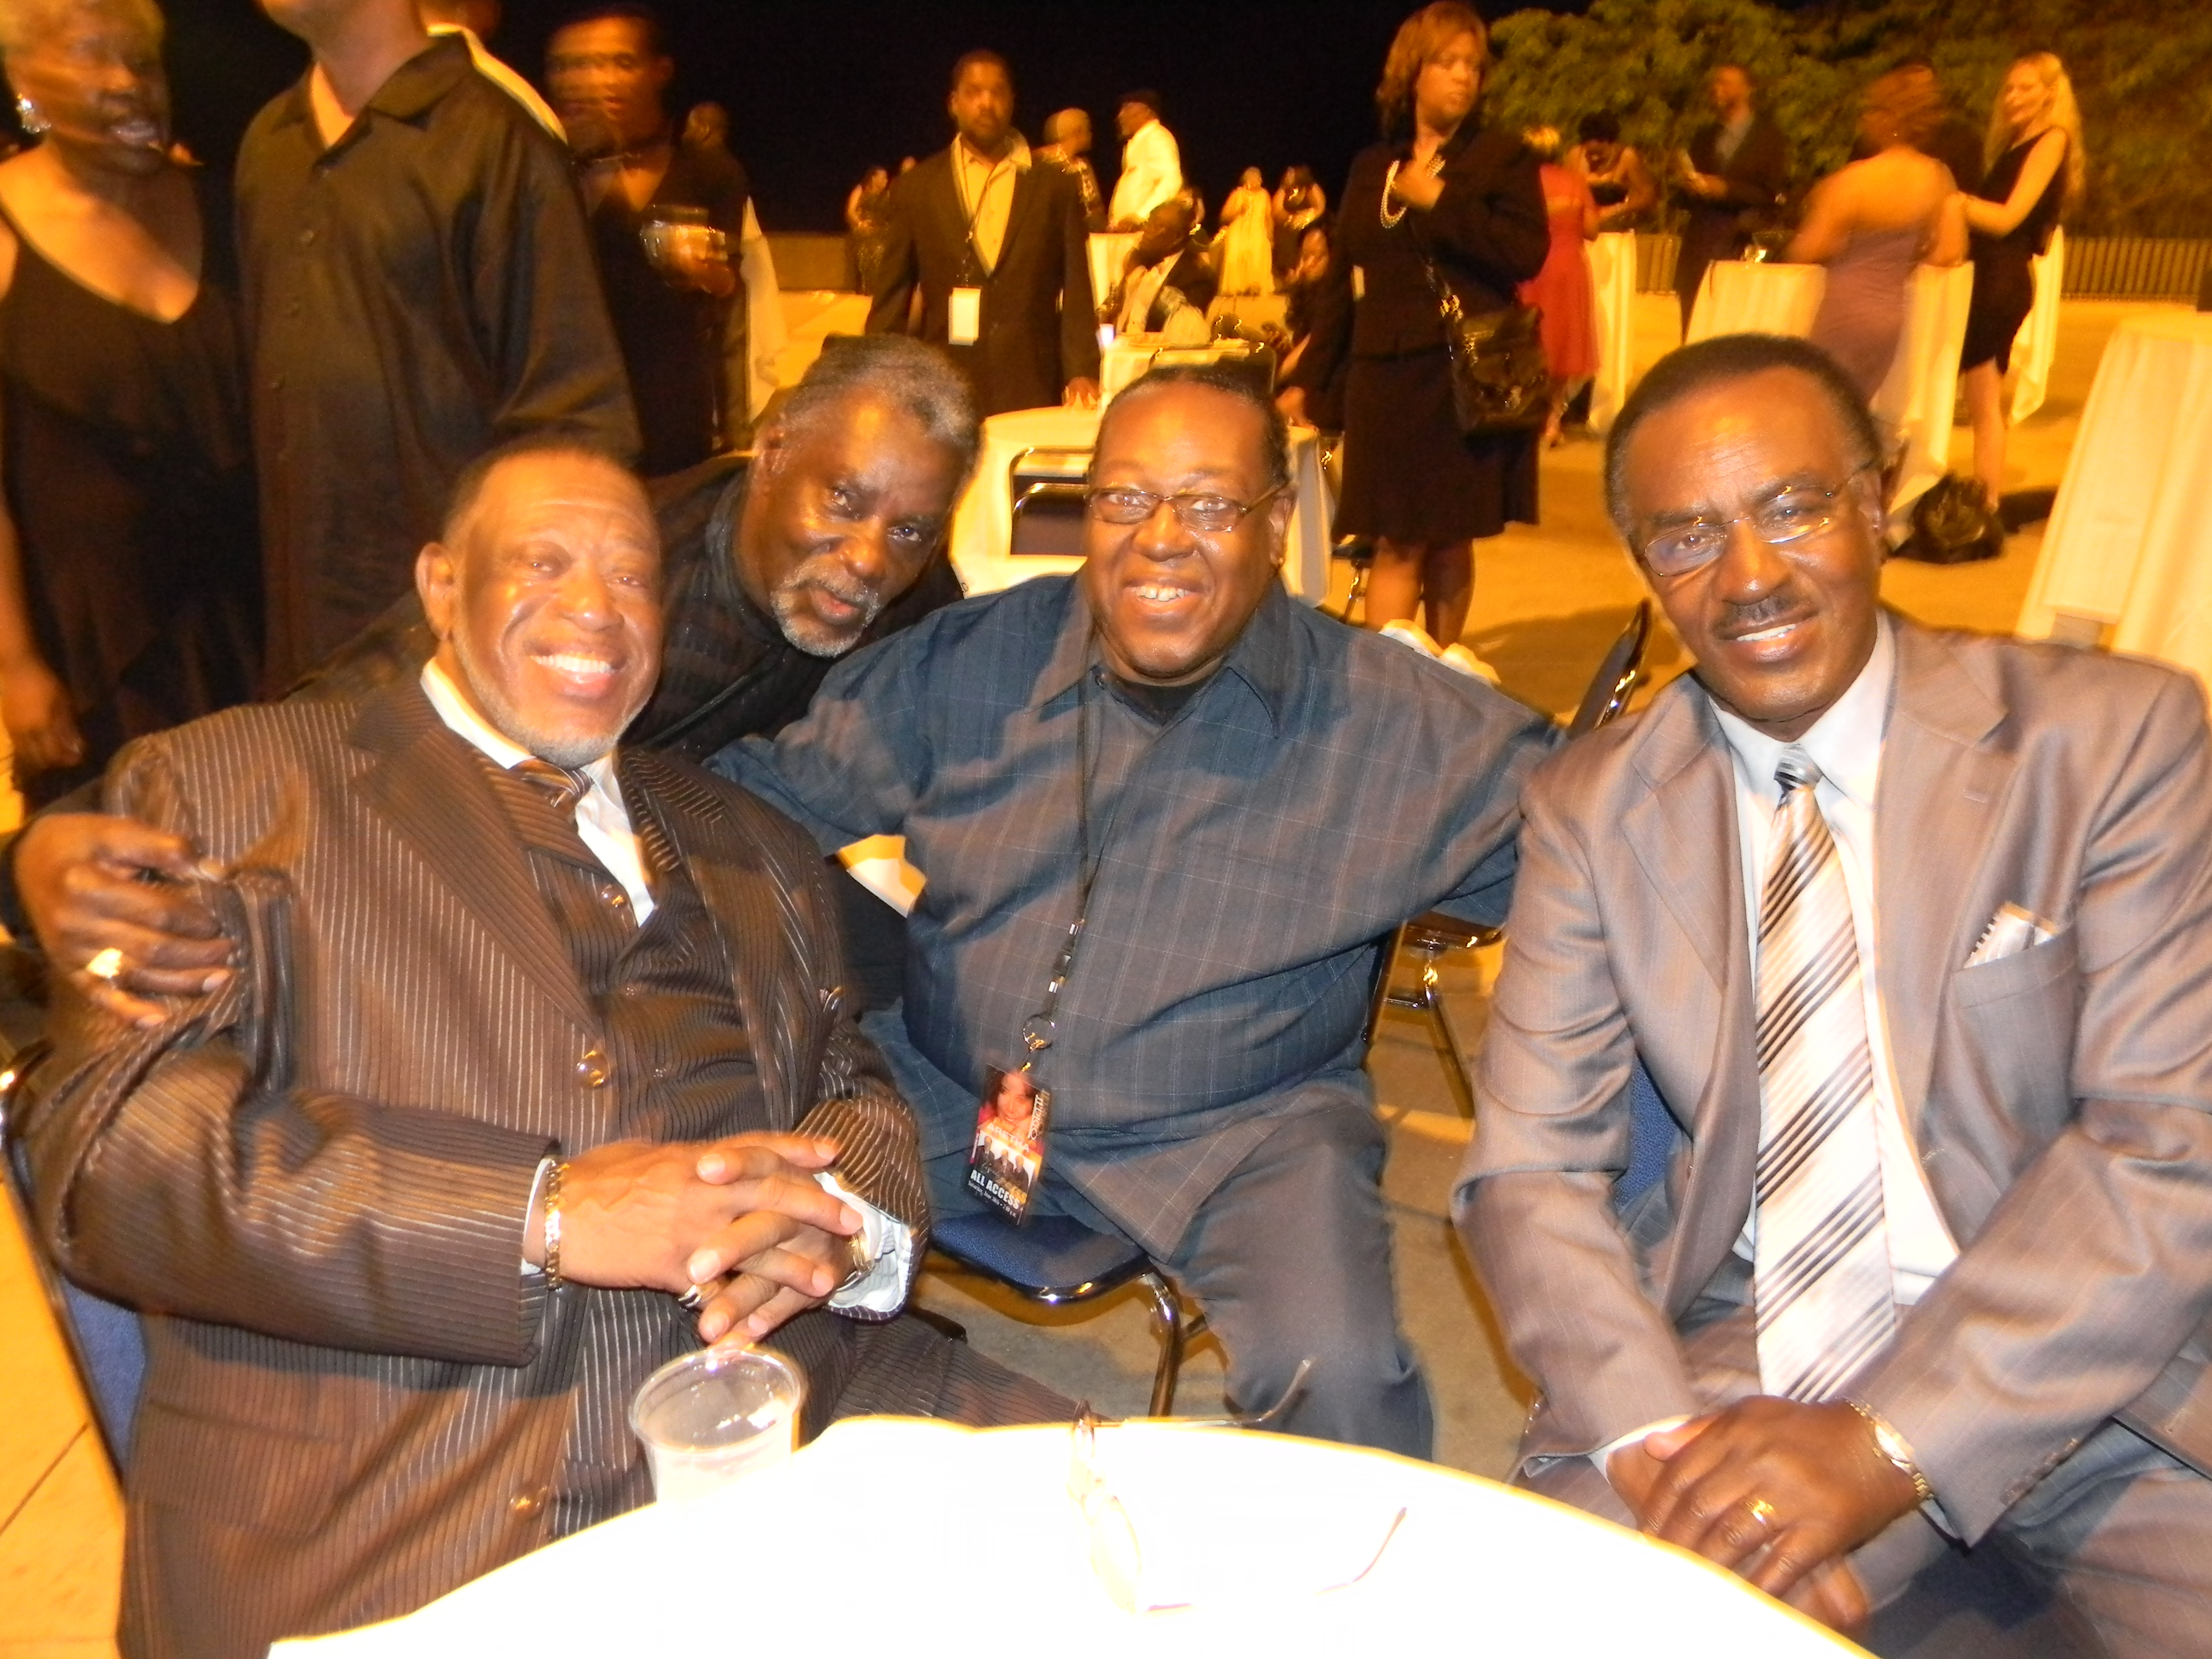 PJ WILLIS WITH THE IMPRESSIONS & UNKNOWN GENTLEMAN TO MY RIGHT